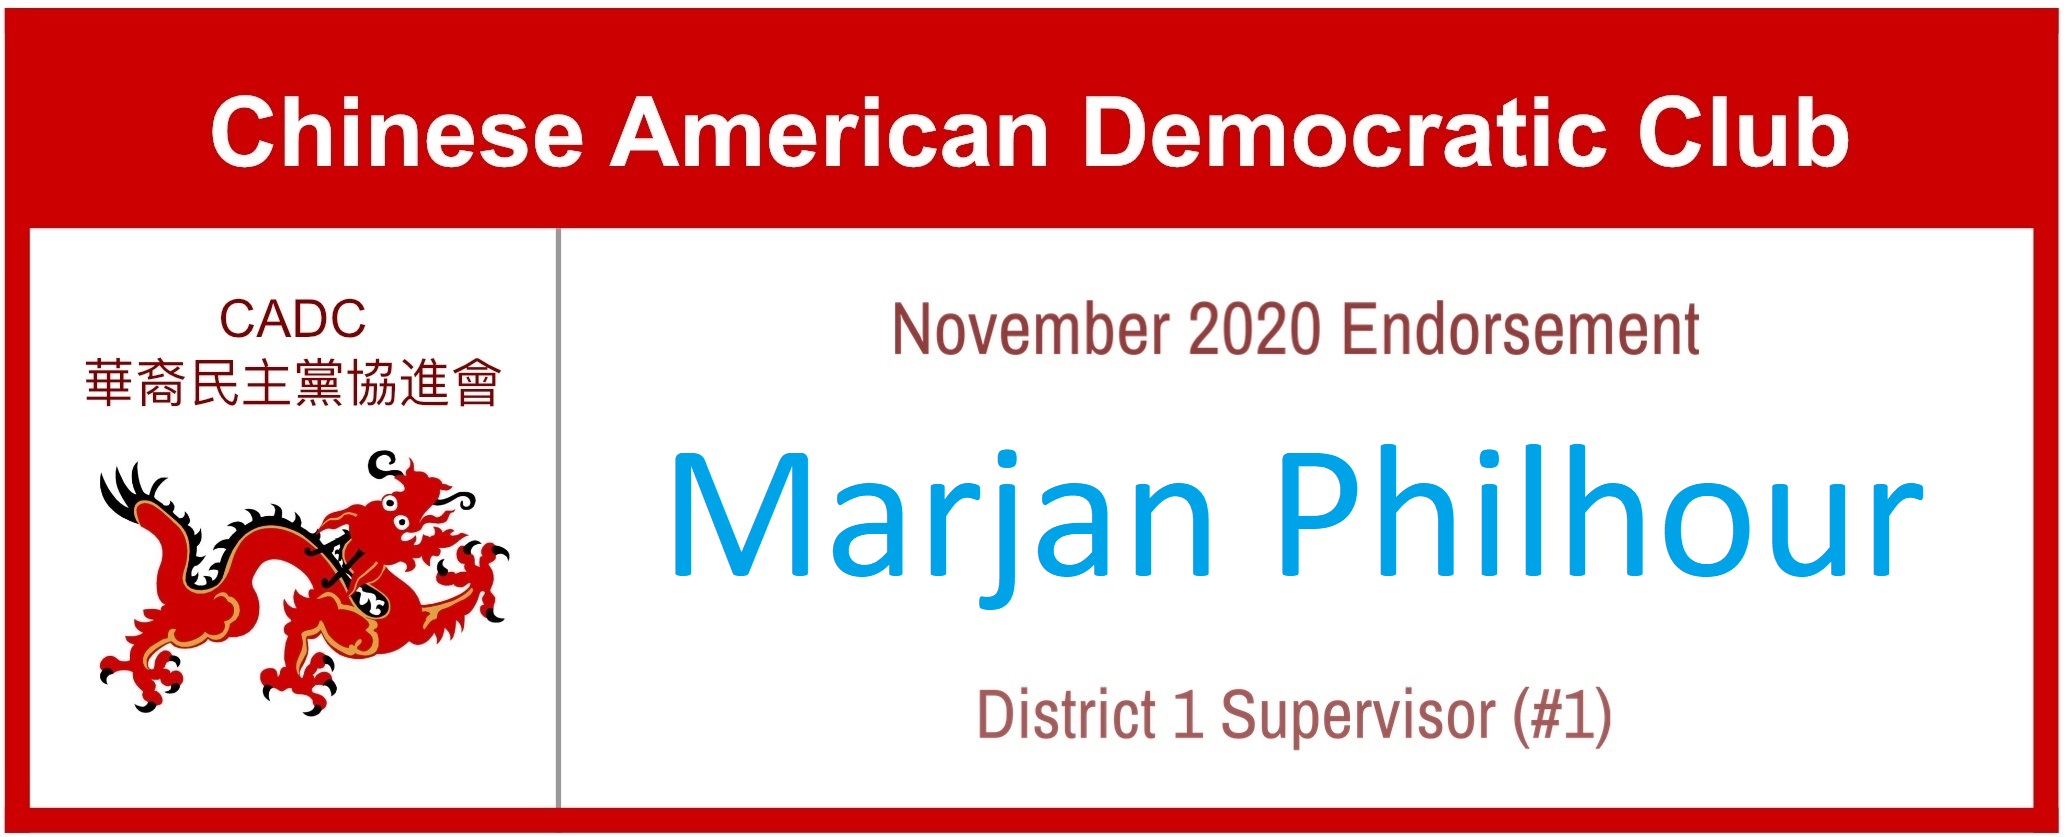 Marjan Philhour for District 1 Supervisor - CADC #1 Endorsement November 2020